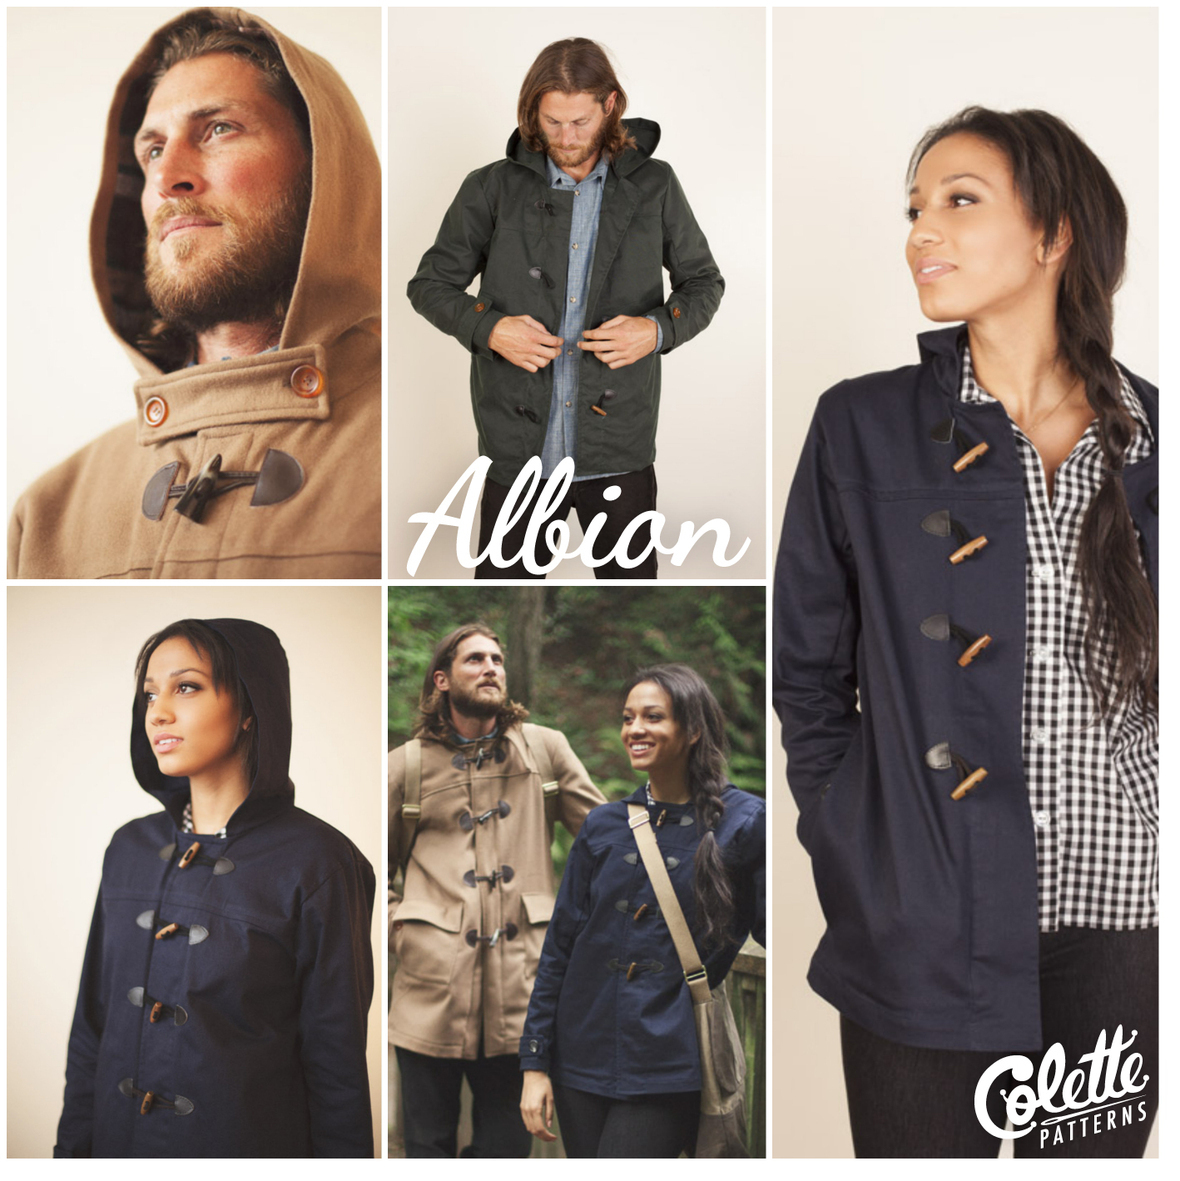 colette patterns albion coat sewing pattern